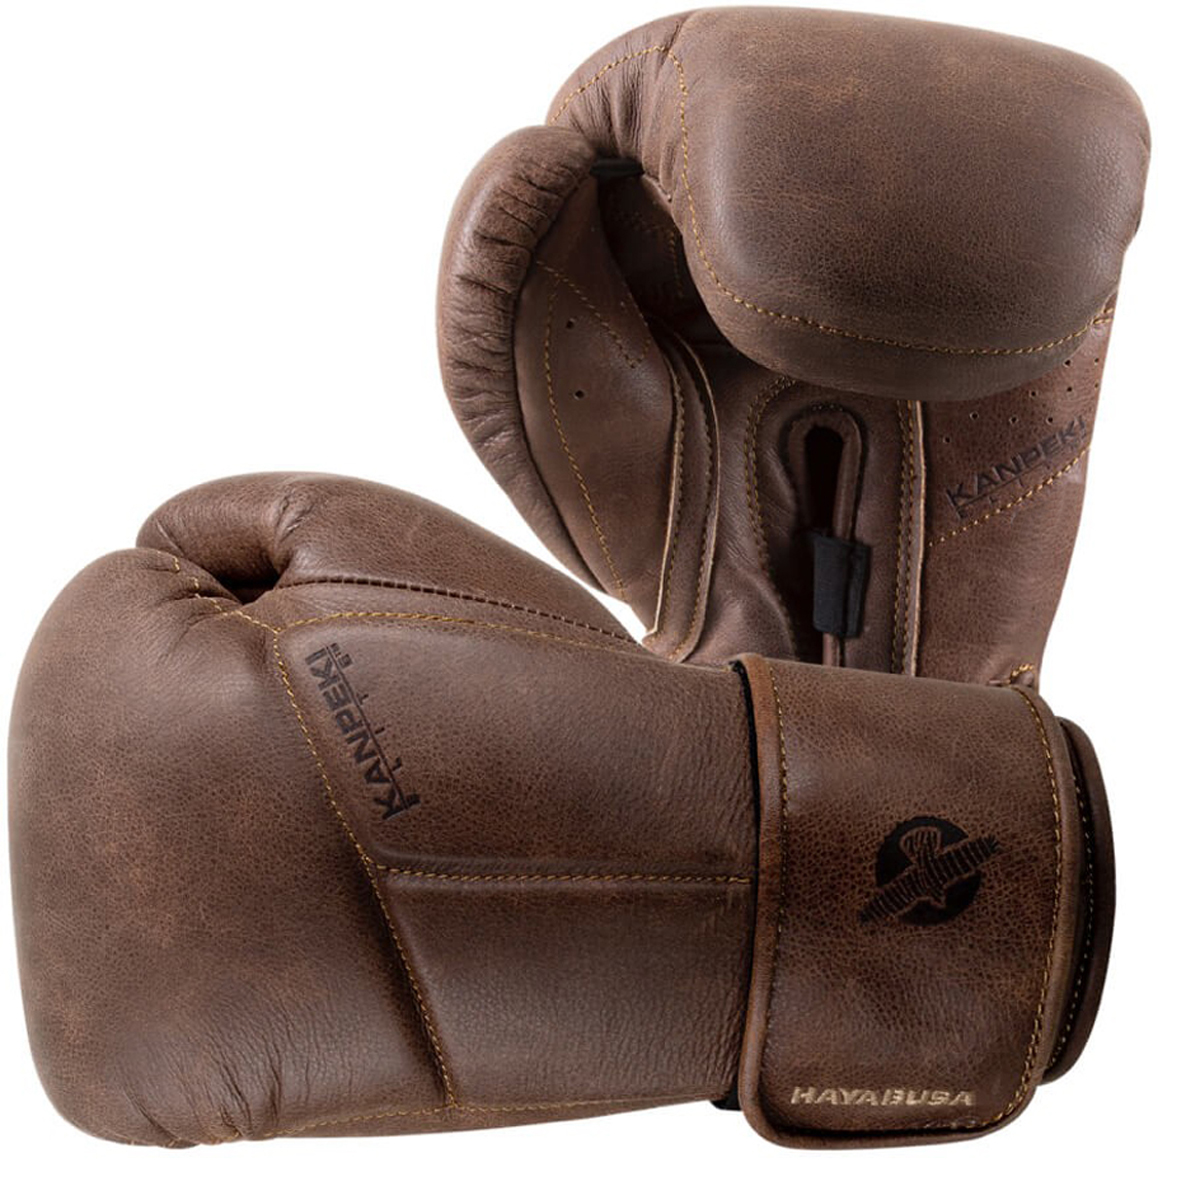 Hayabusa Kanpeki Elite 3.0 Heavy Bag Boxing Gloves - Brown